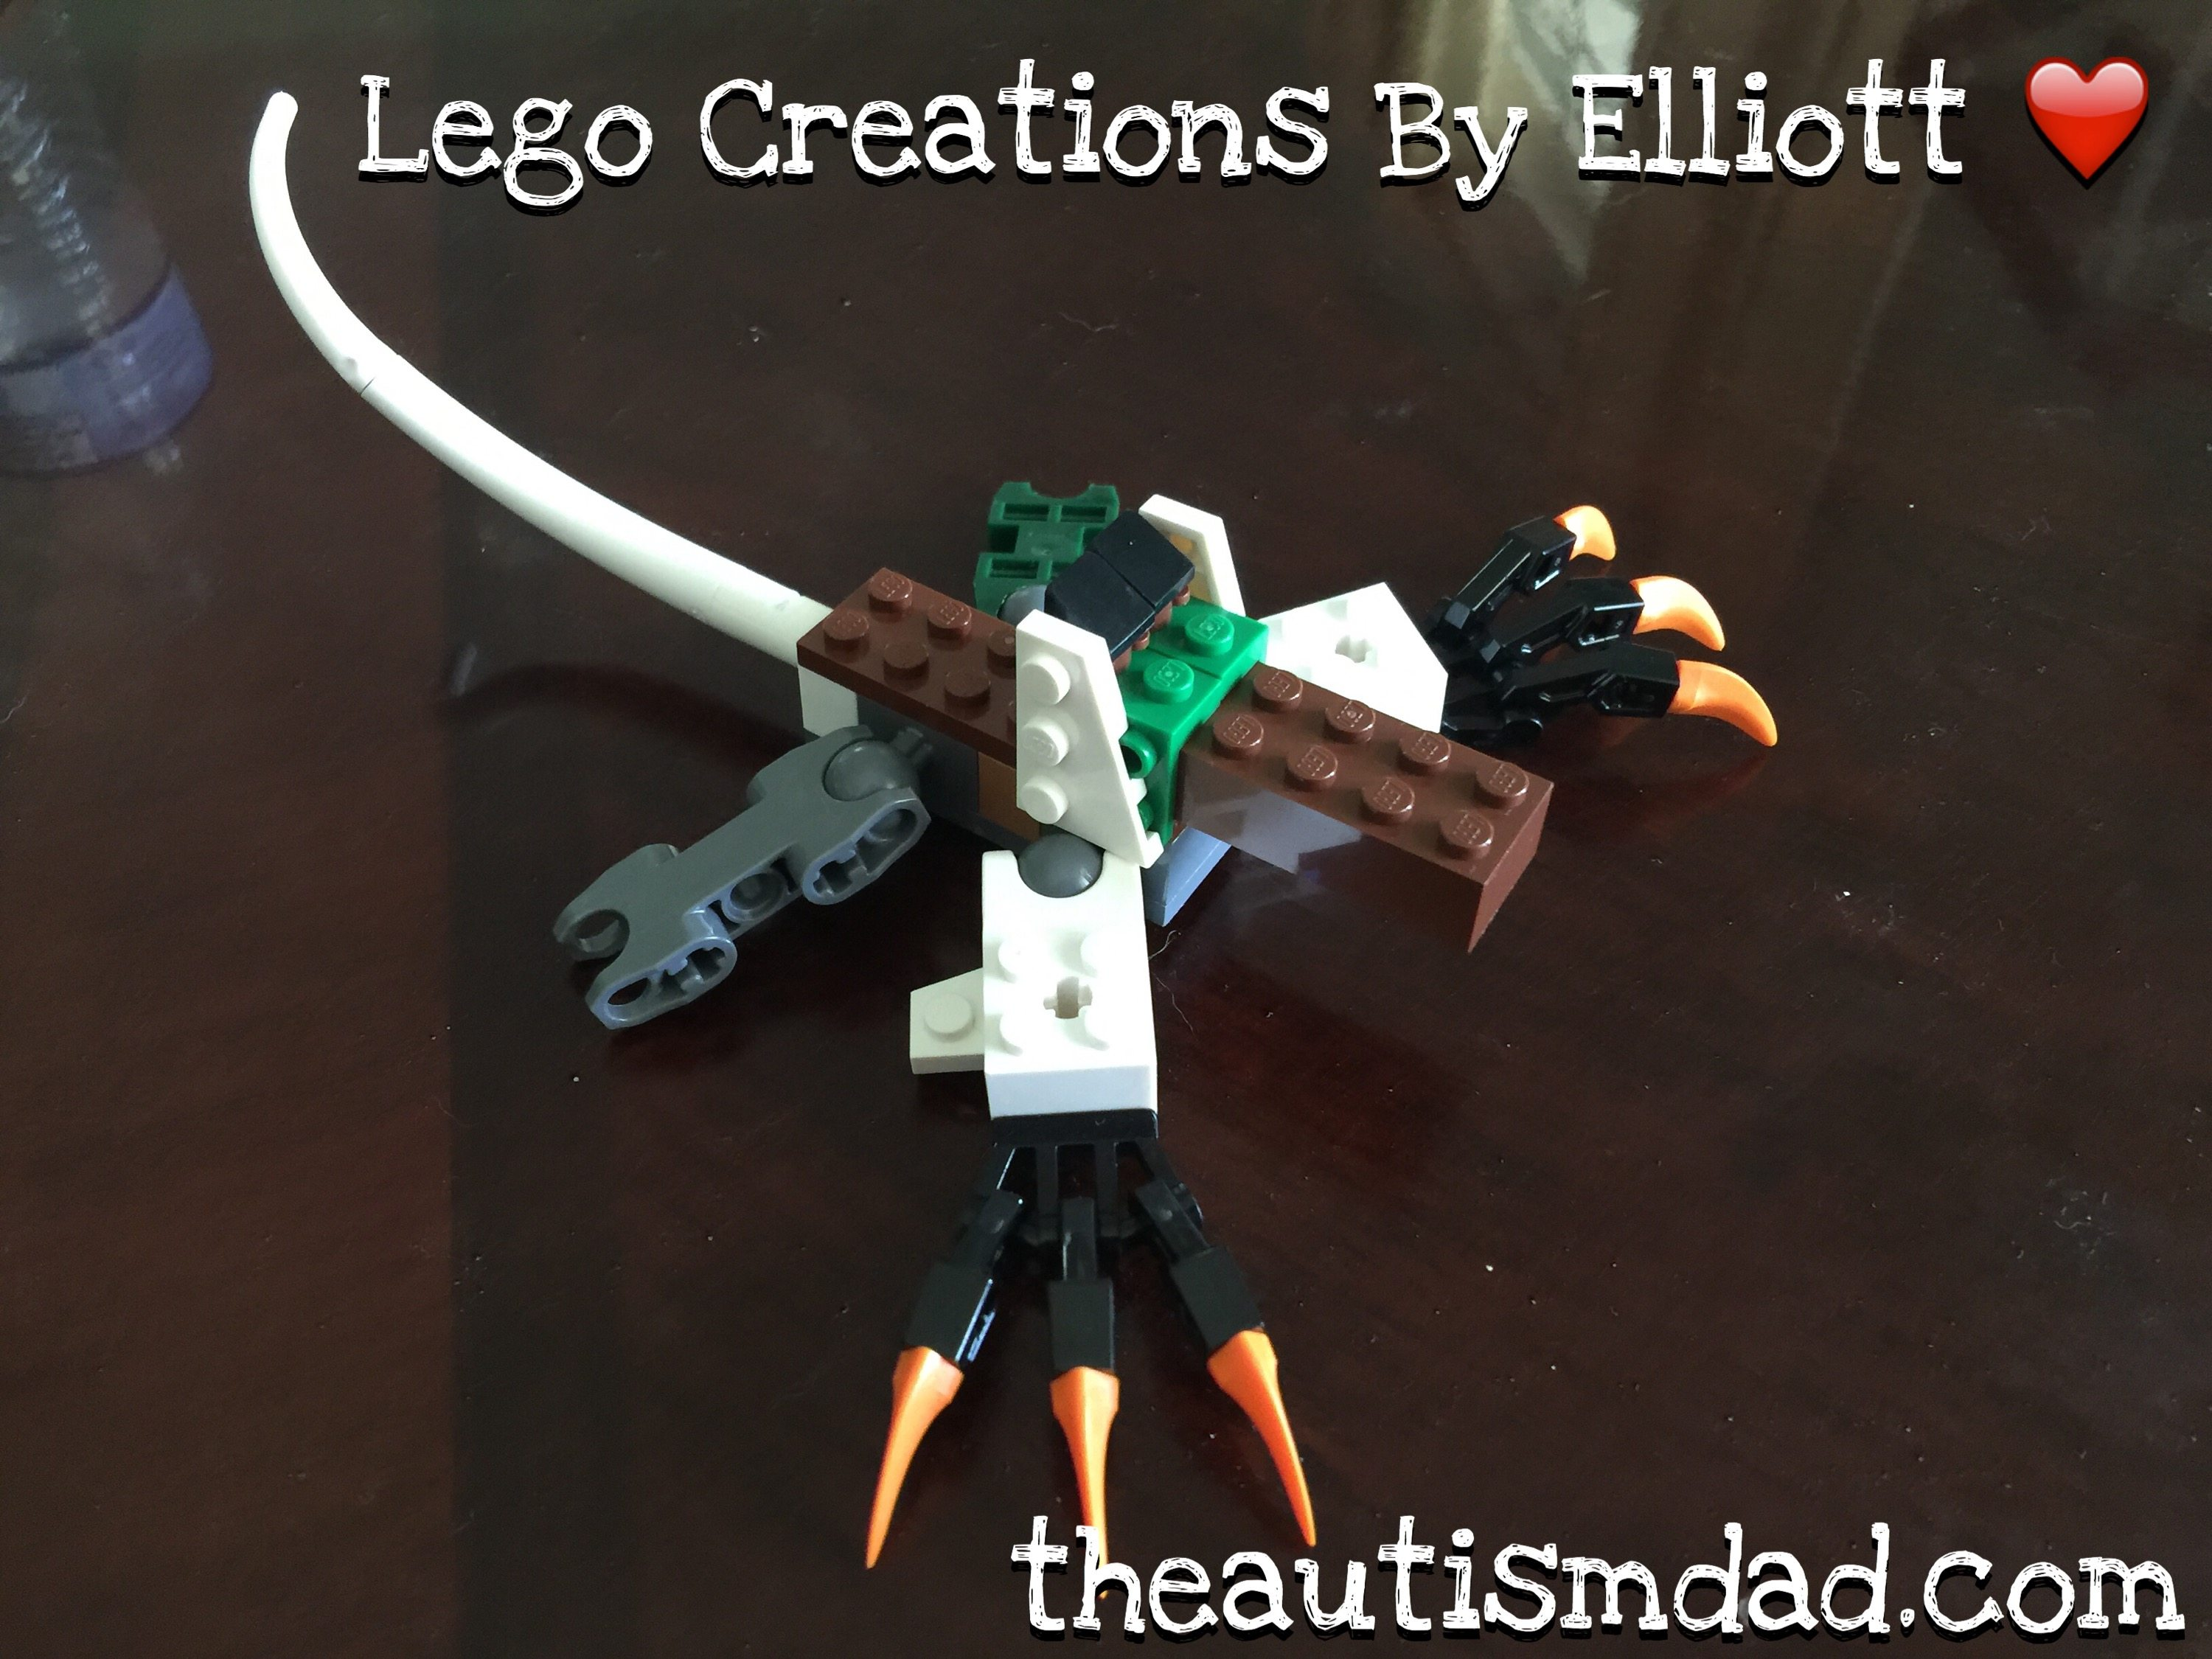 Lego creations by Elliott: The Ferret